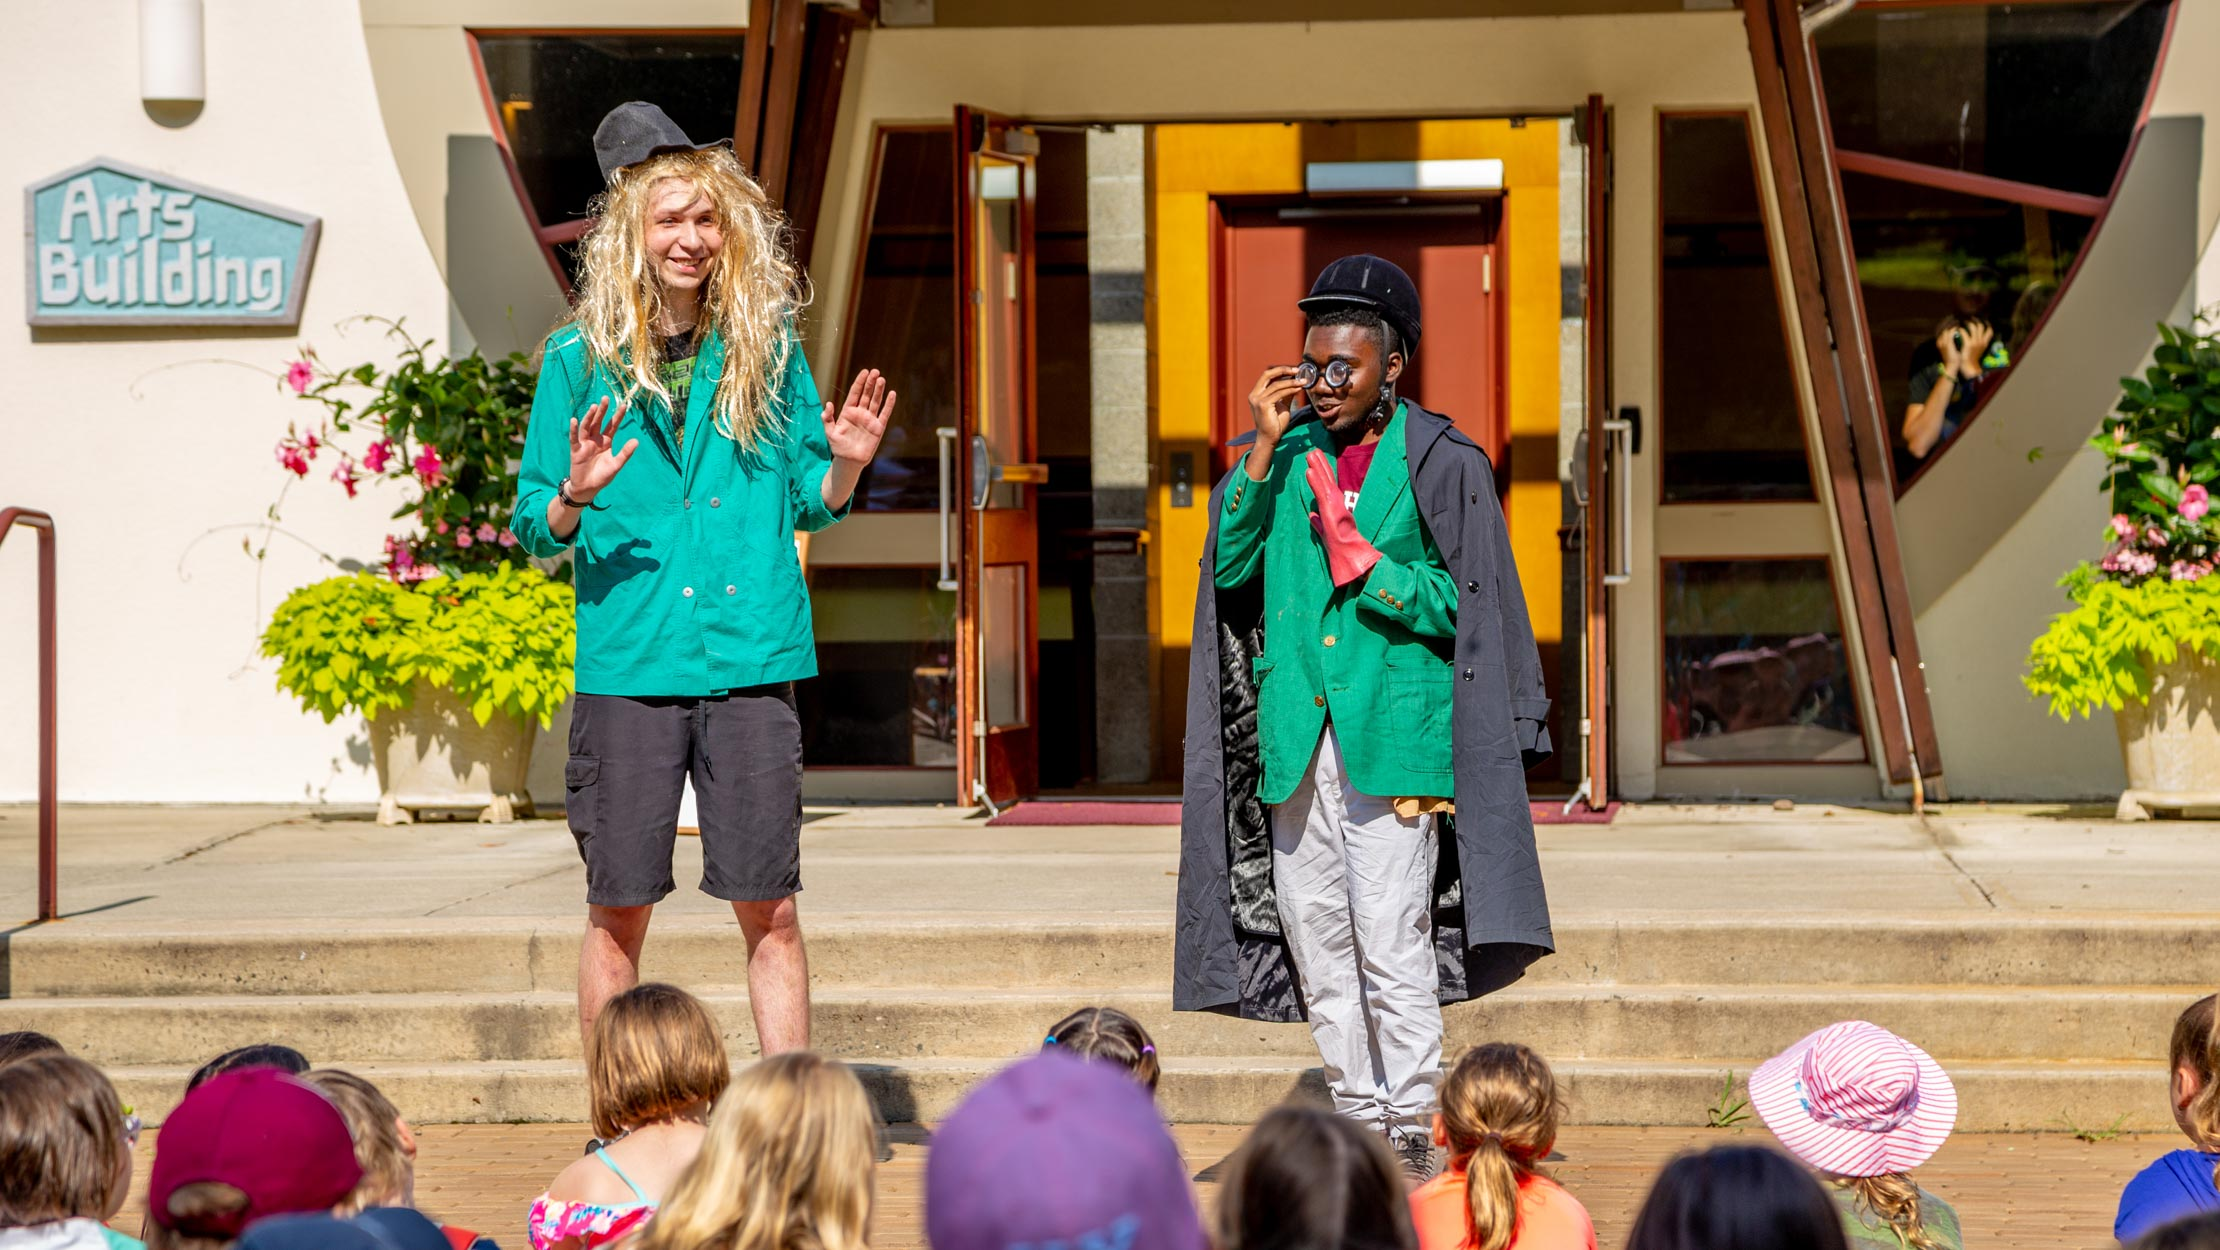 Counselors dressed up performing a skit for campers